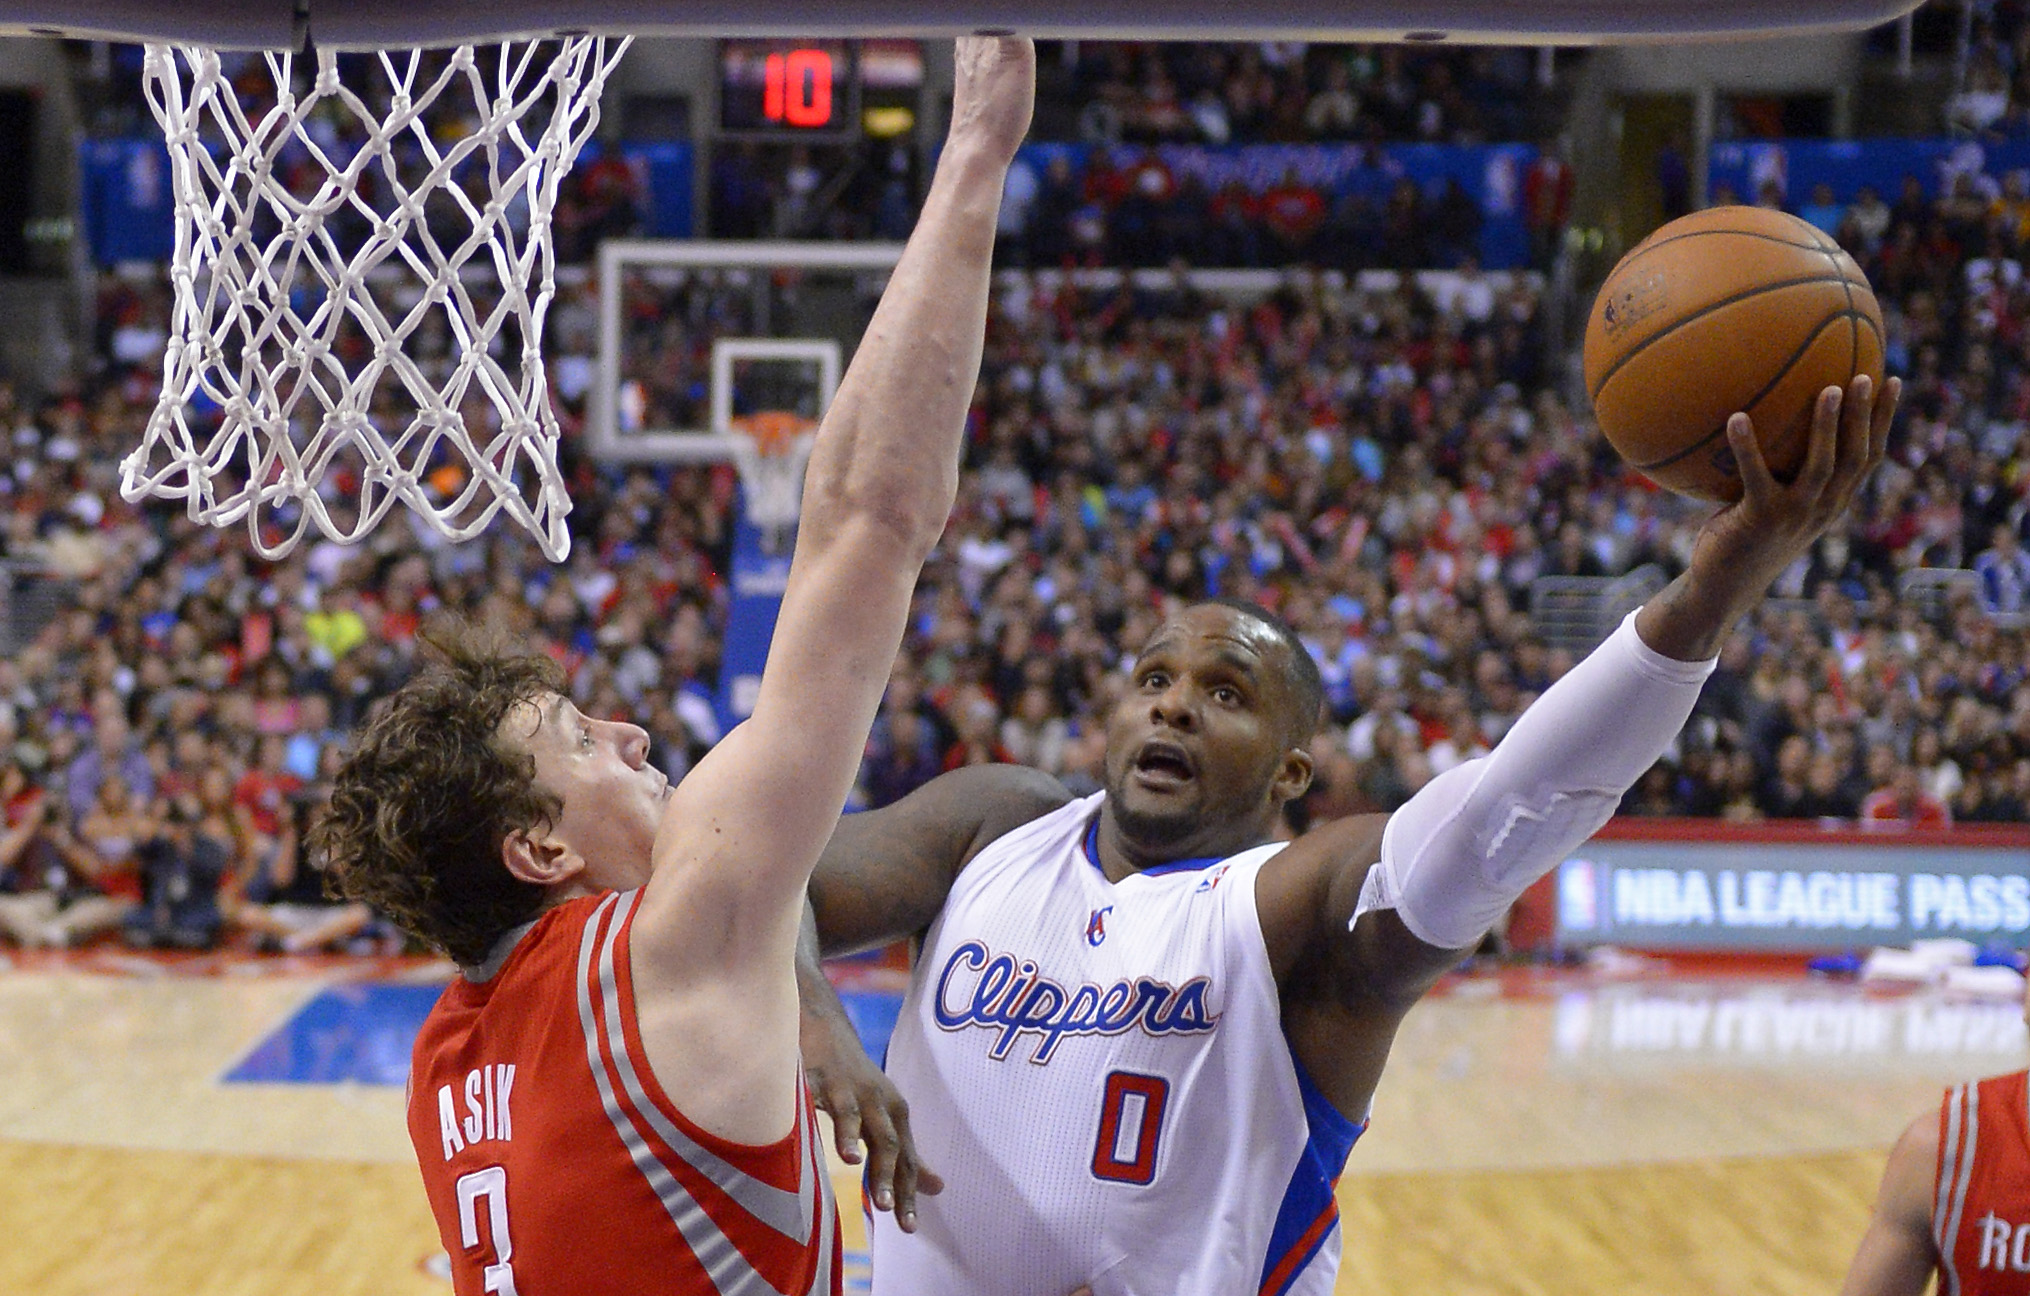 Los Angeles Clippers forward Glen Davis, right, puts up a shot Houston Rockets center Omer Asik, of Turkey, defends during the second half of an NBA basketball game, Wednesday, Feb. 26, 2014, in Los Angeles